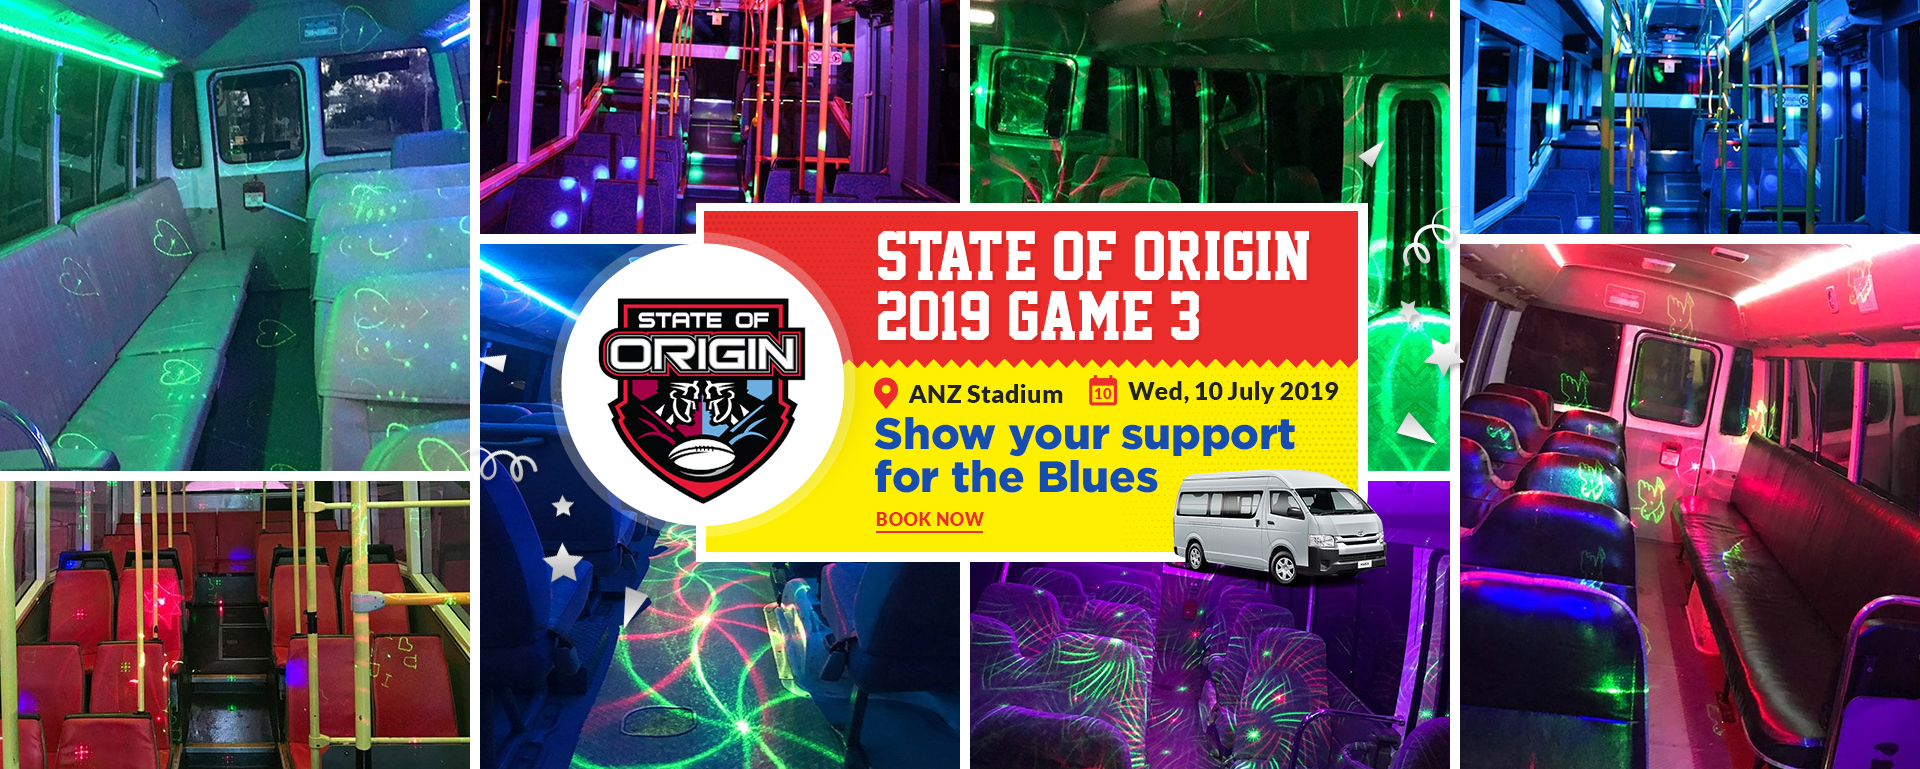 State Of Origin 2019 Game 3 - Sydney